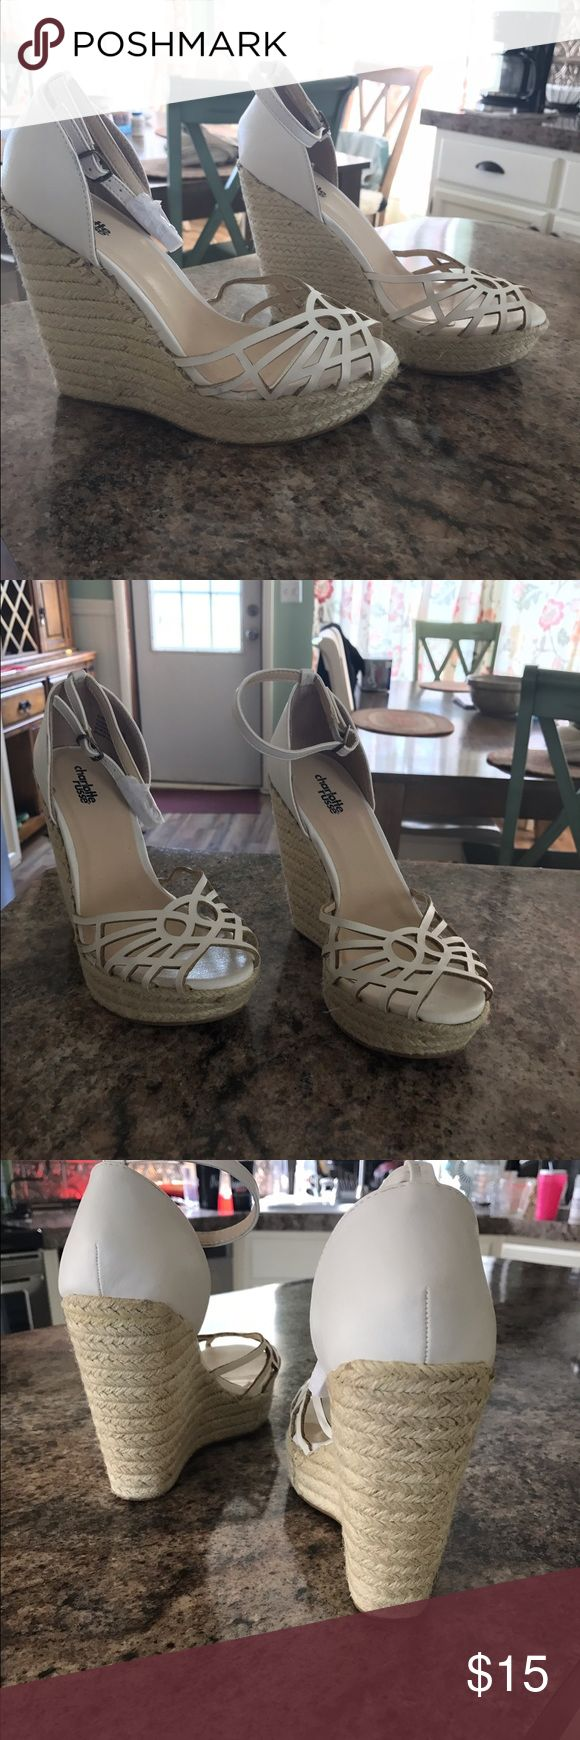 White wedge heels Never worn size 8 wedges Charlotte Russe Shoes Wedges